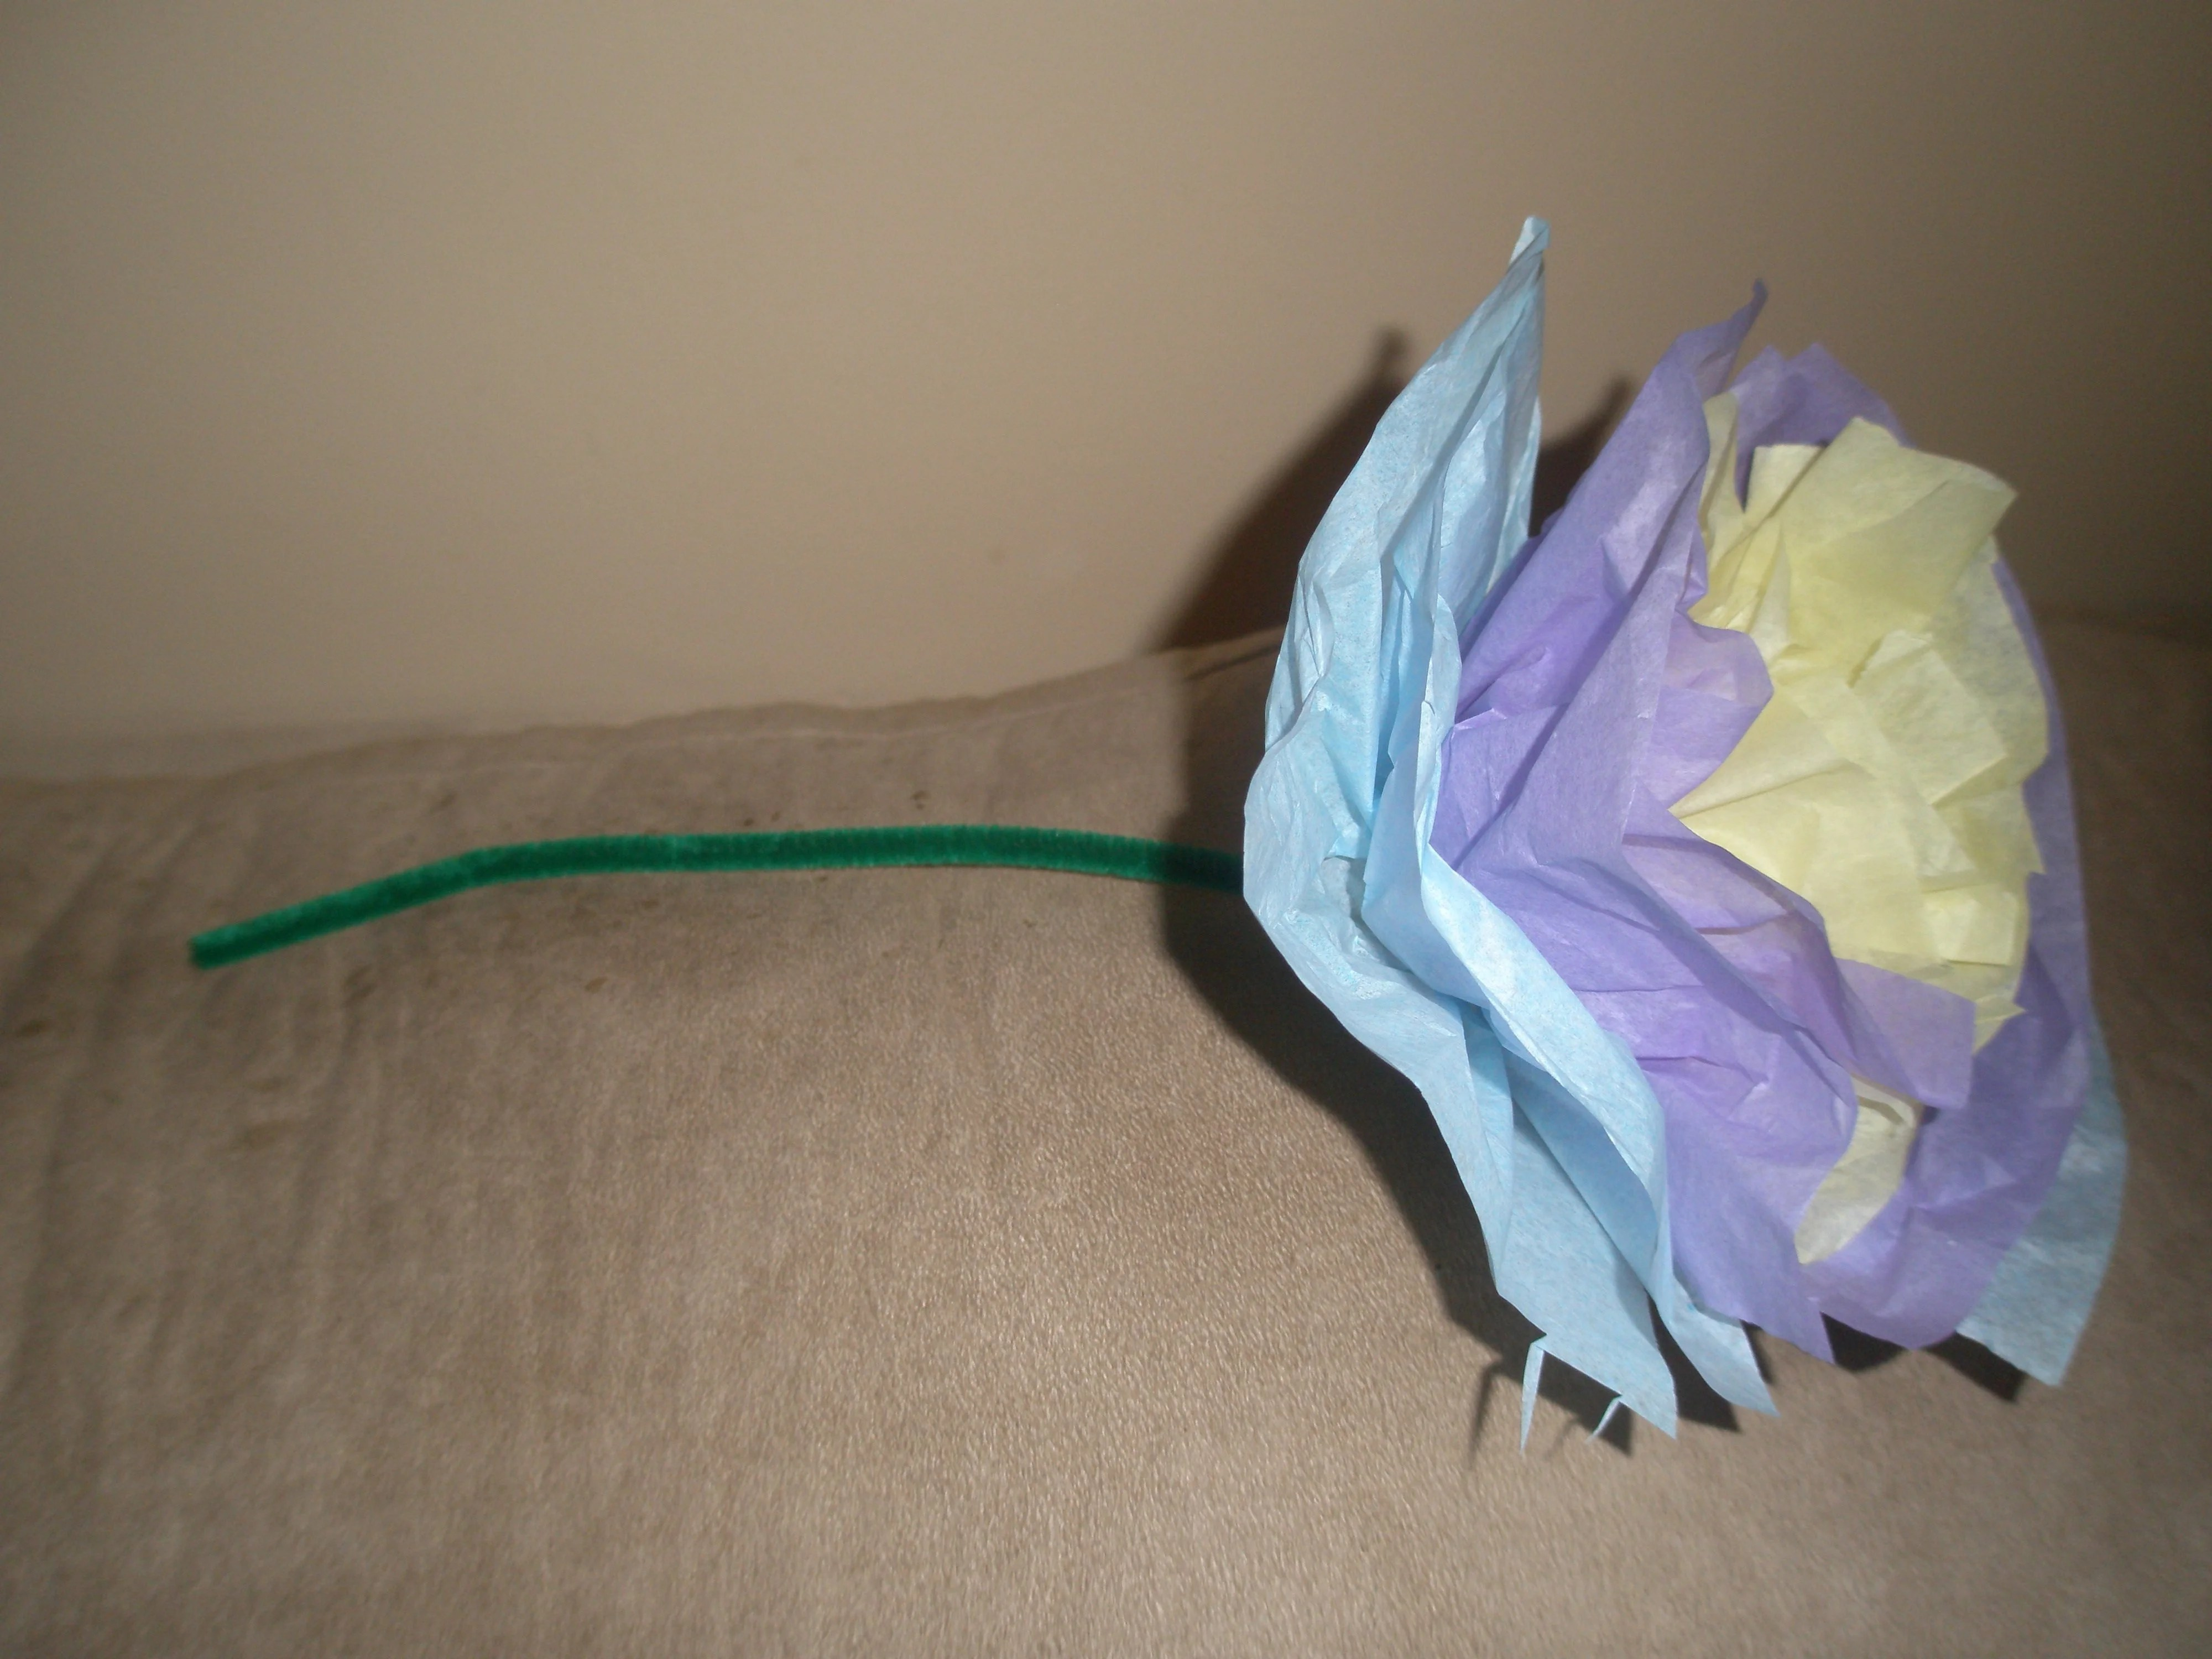 How to make a tissue paper flower arts crafts projects for kids tips dhlflorist Images